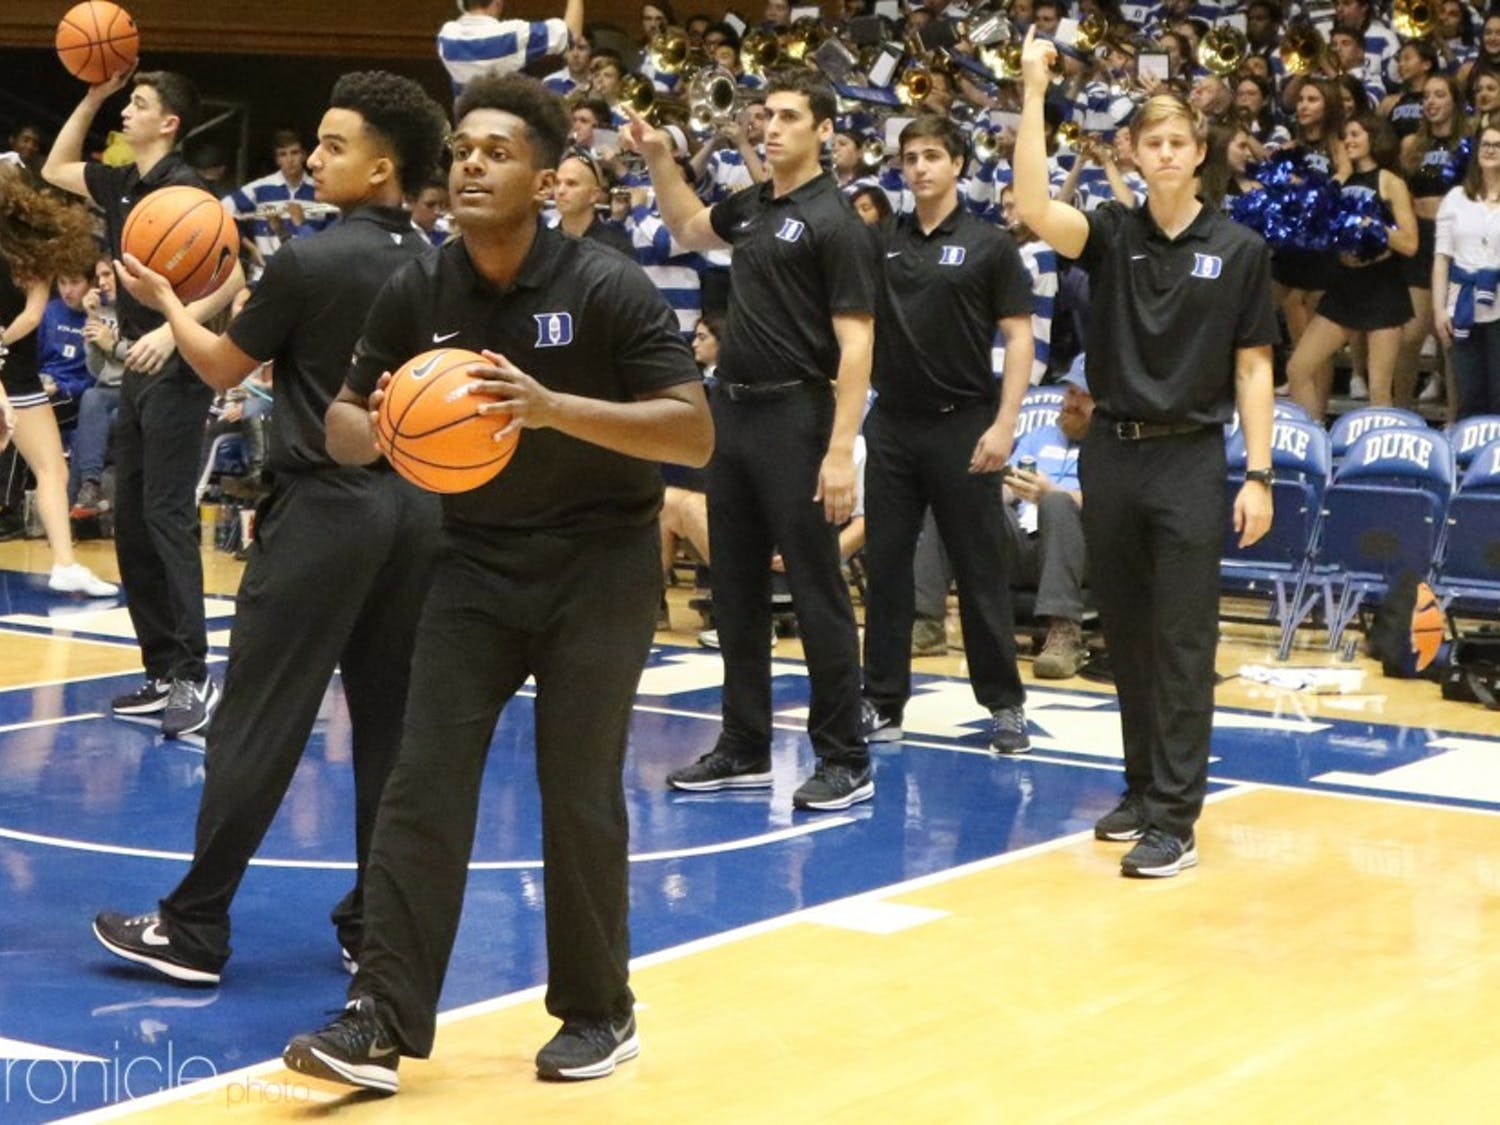 The student managers for the 2017-18 men's basketball team are all male. The team has not hired a woman to a manager position since the fall of 2012.